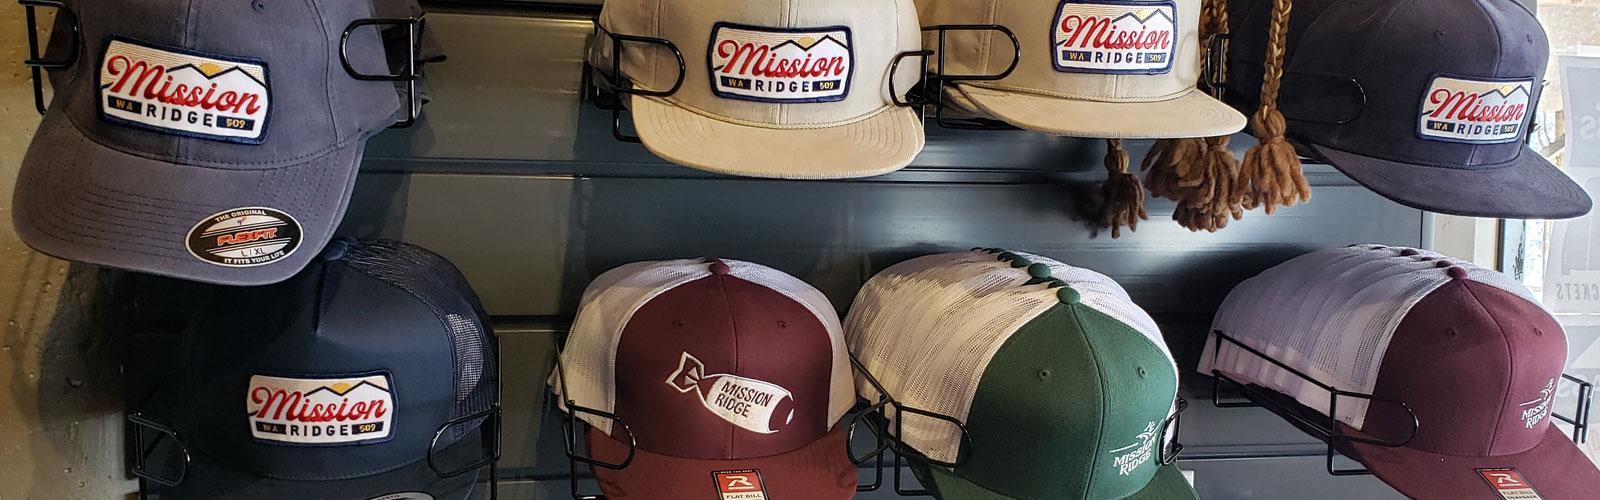 Row of Mission Ridge Logo Hats